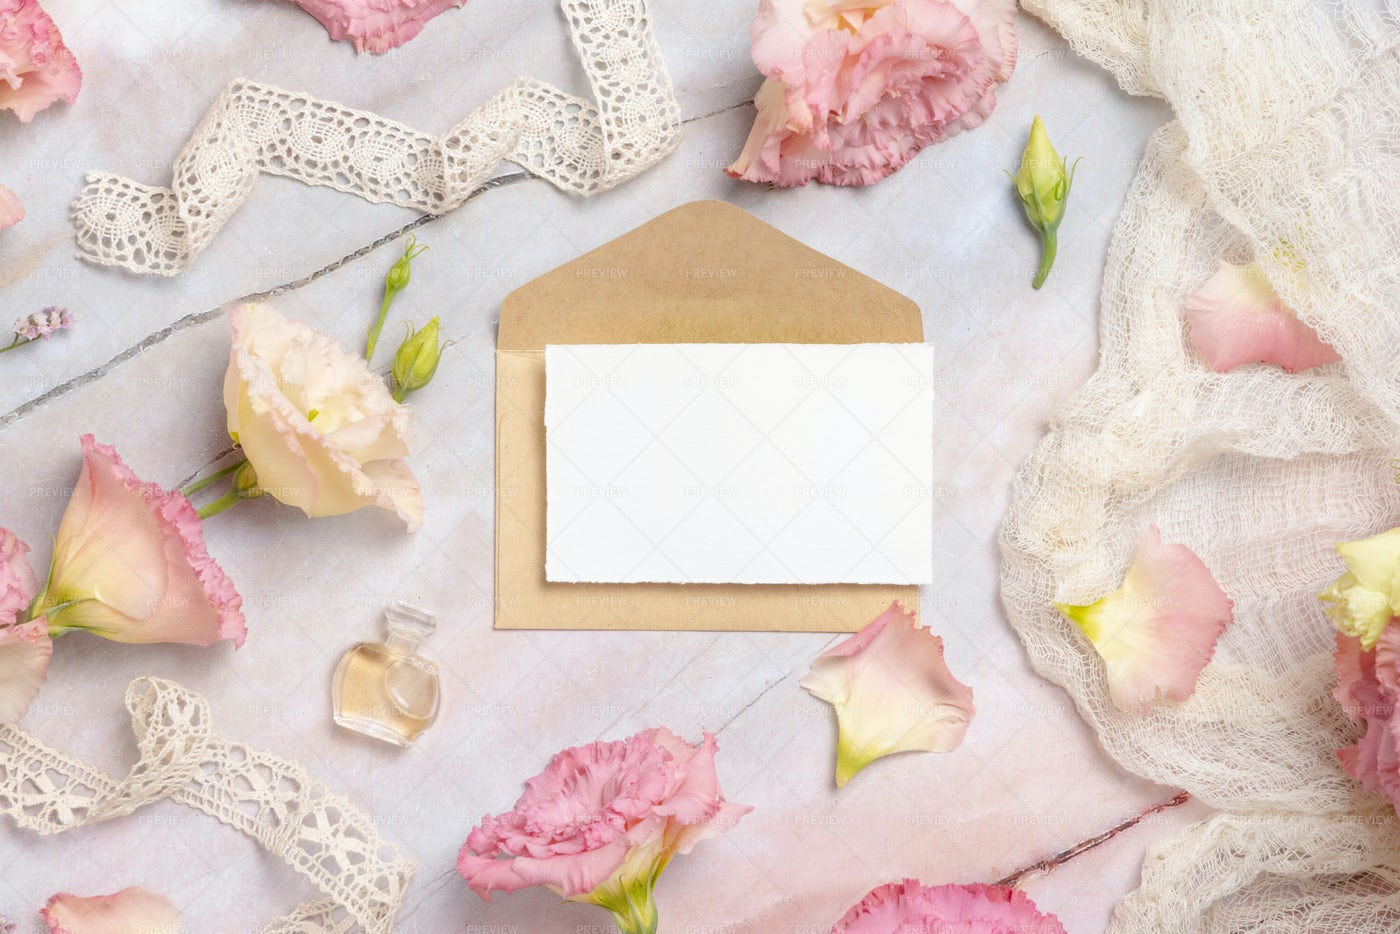 Pink Flowers And A Blank Card: Stock Photos